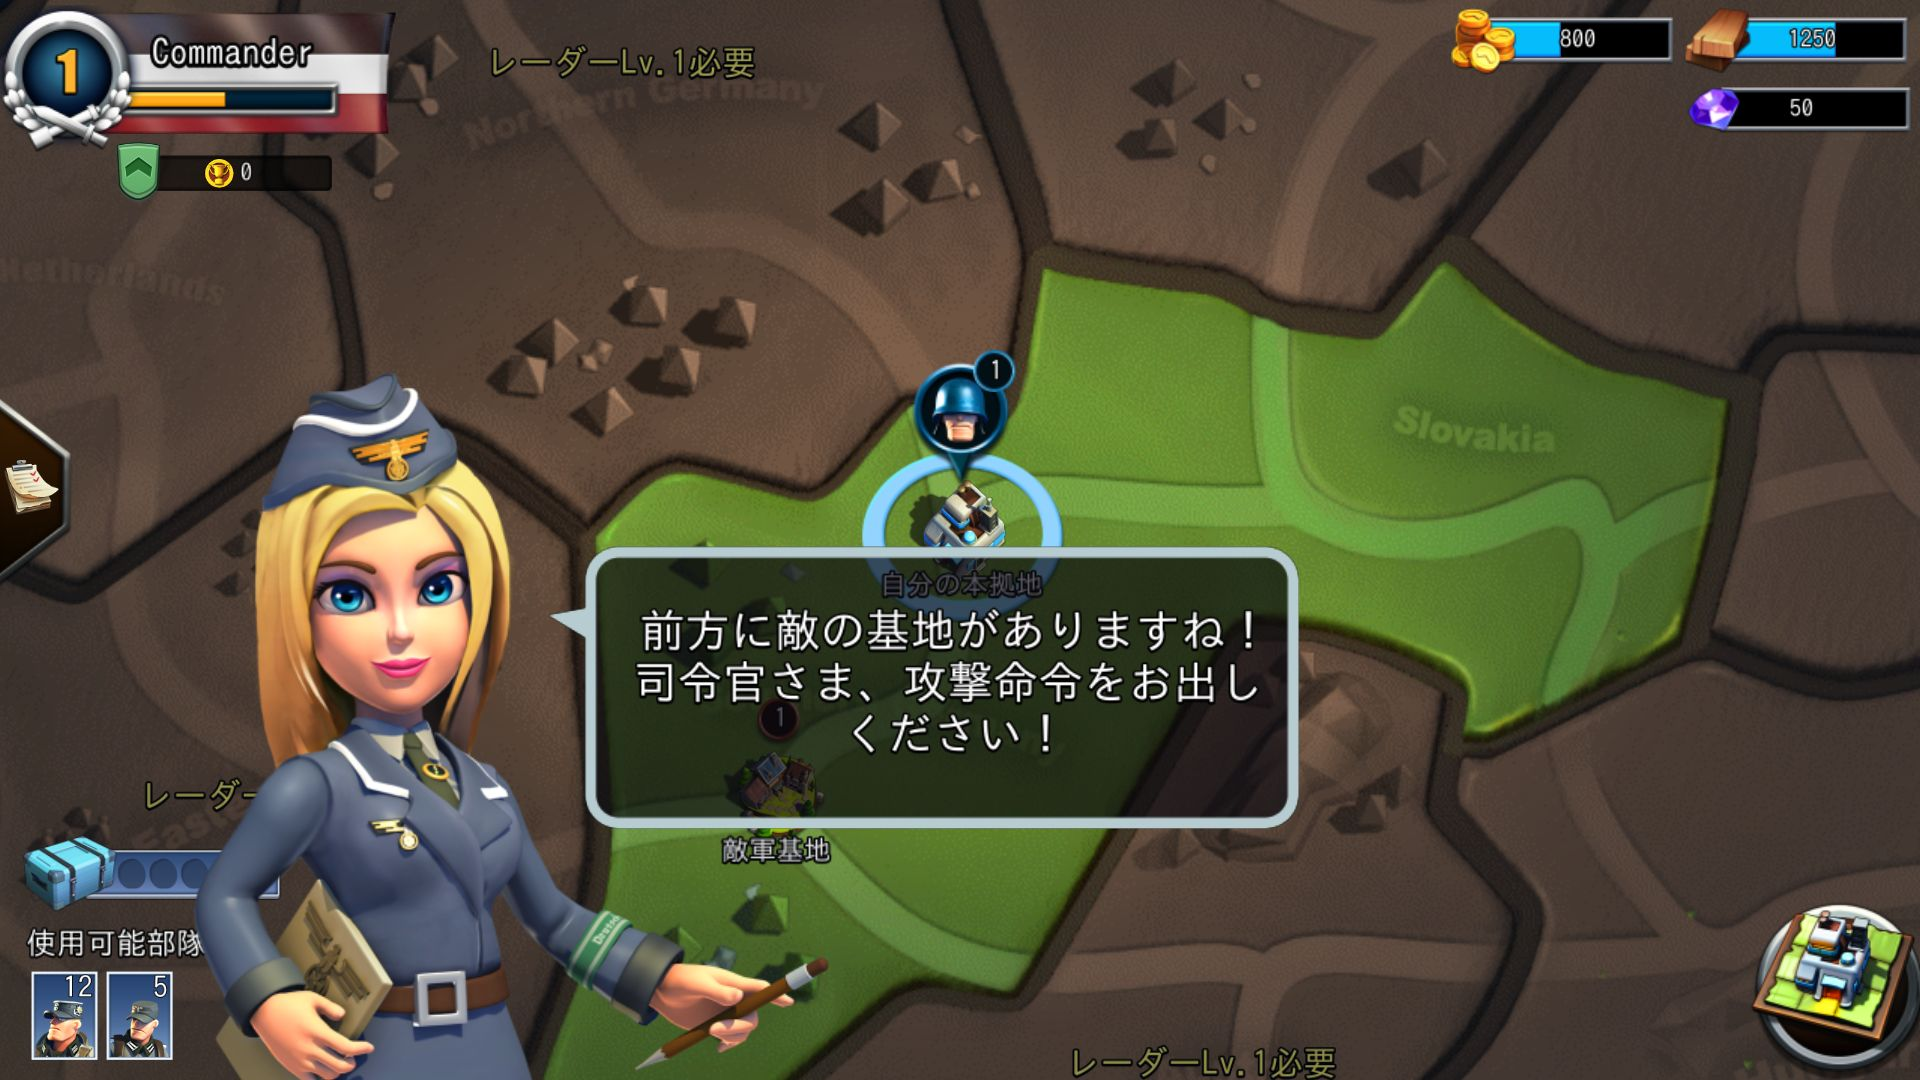 androidアプリ StormFront 1944攻略スクリーンショット2